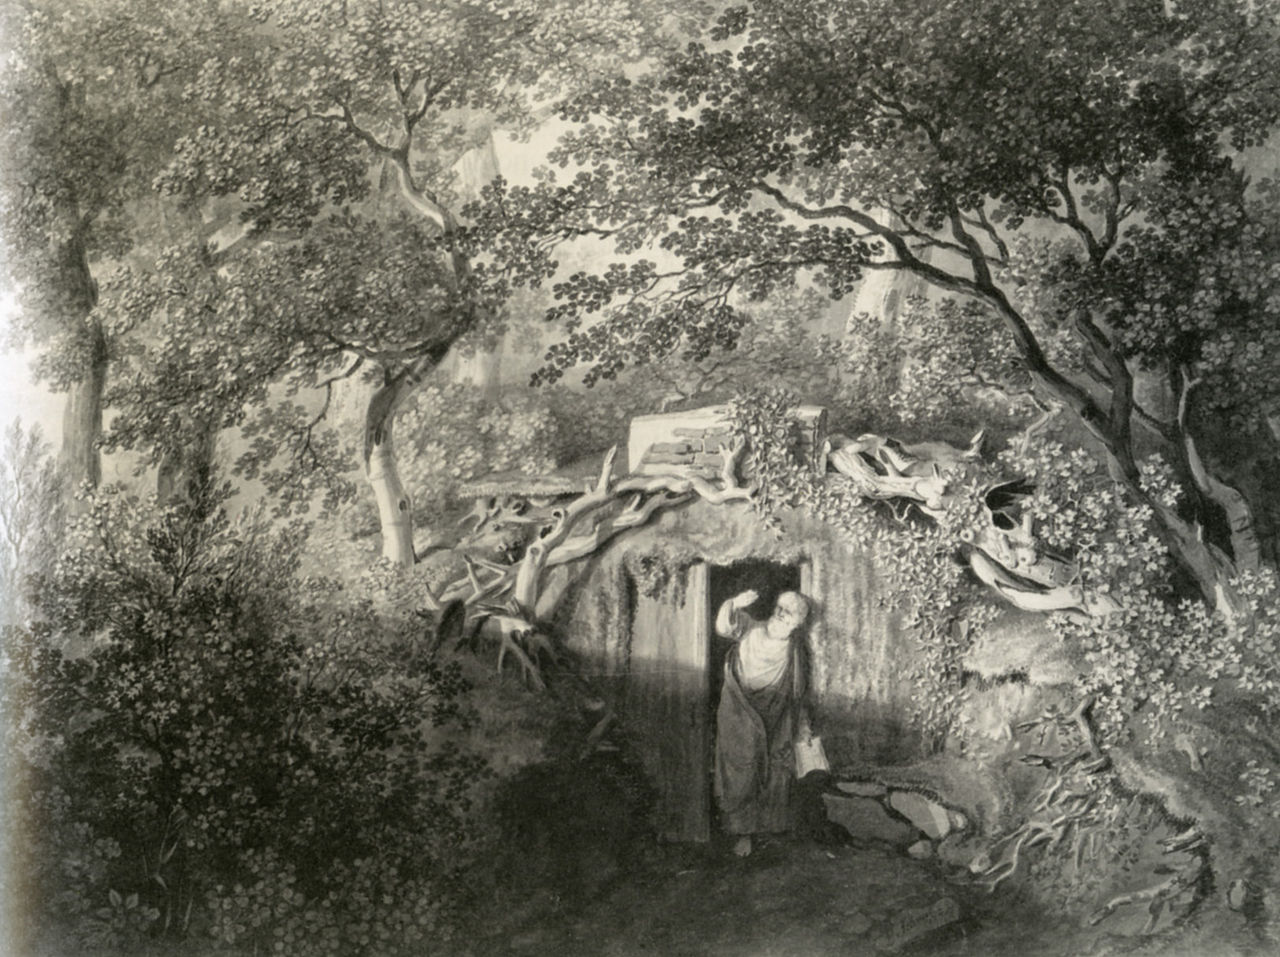 Representation of a garden hermit in Germany in the late 18th century